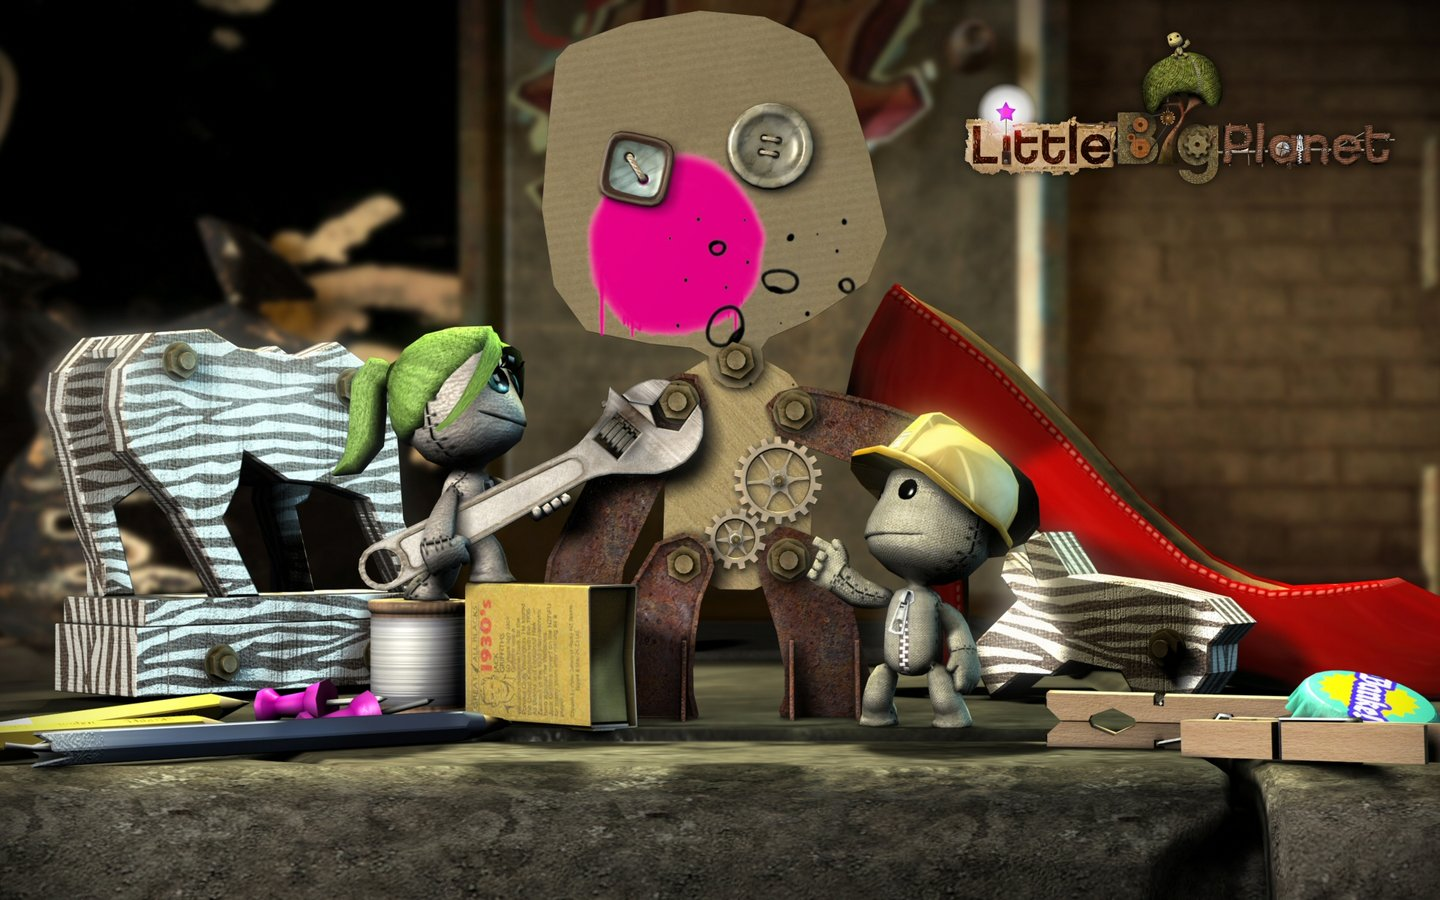 LittleBigPlanet - PS3 Wallpaper